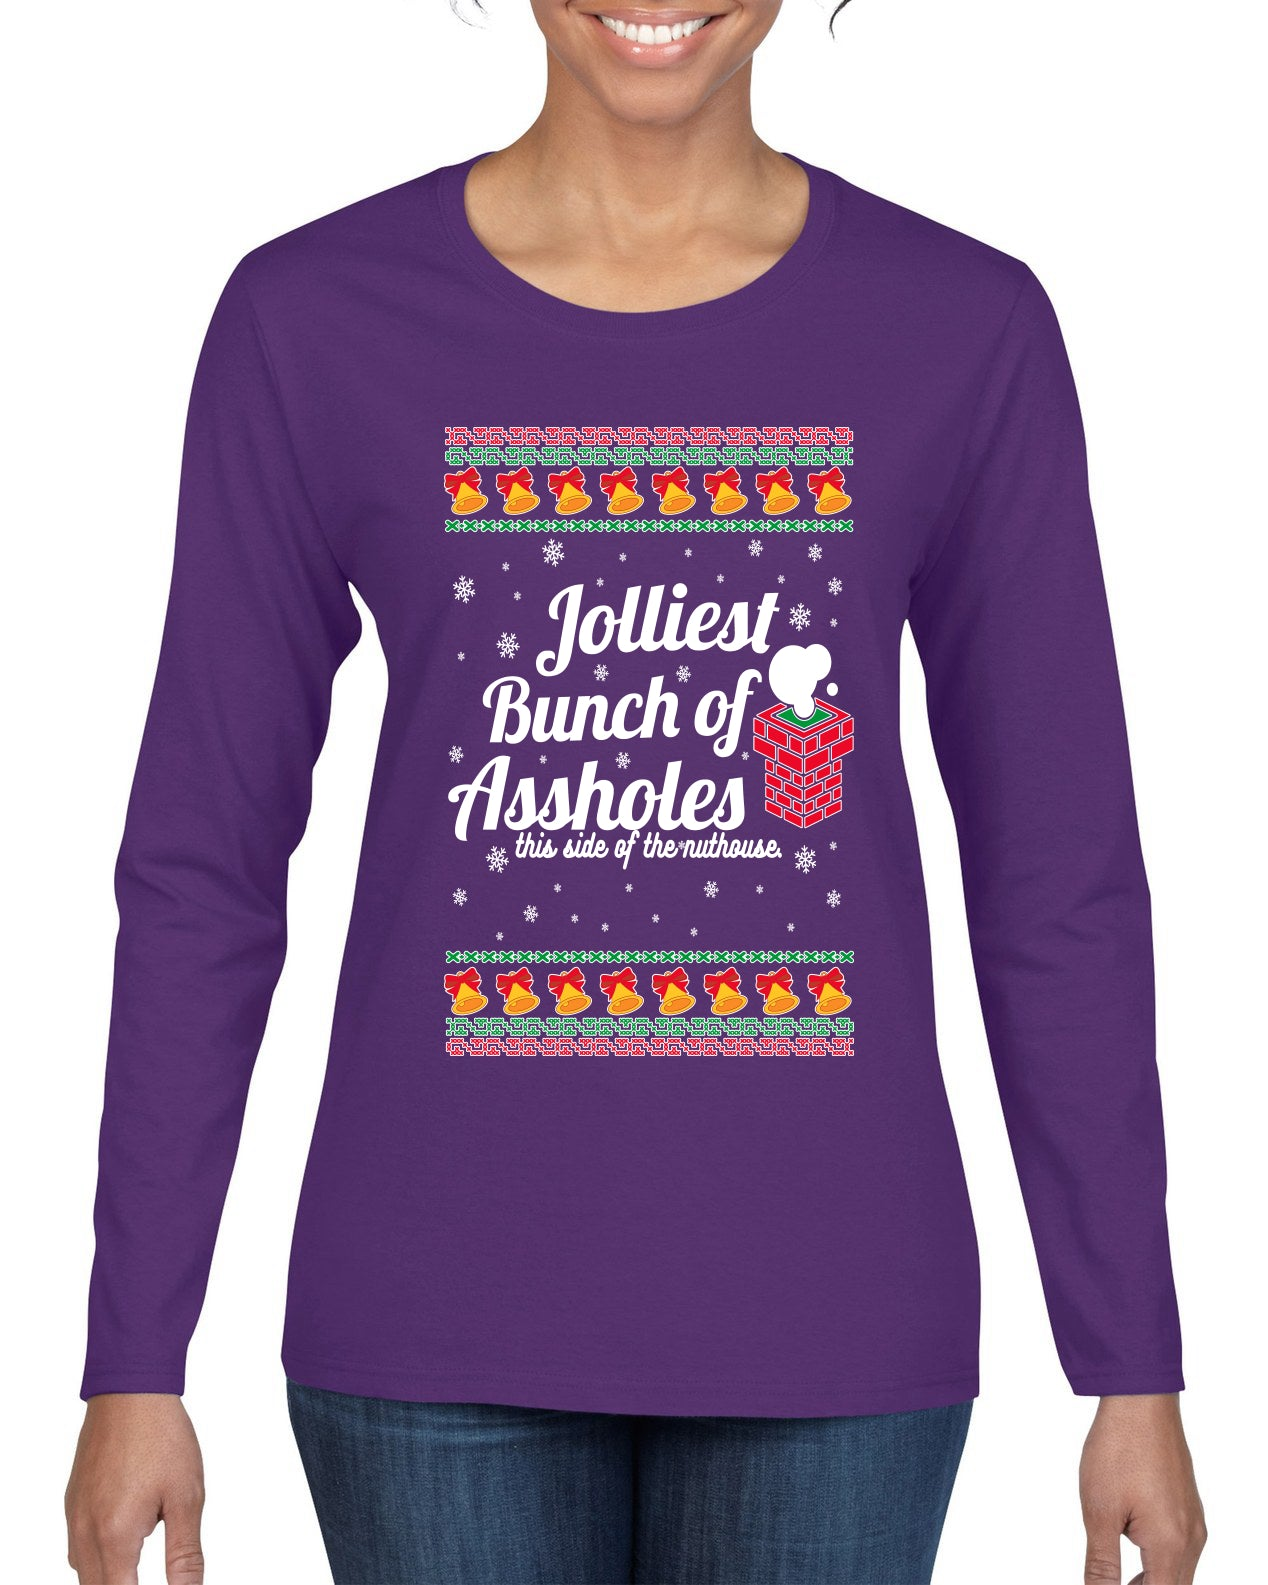 Jolliest Bunch of Assholes Xmas Movie Ugly Christmas Sweater Womens Graphic Long Sleeve T-Shirt